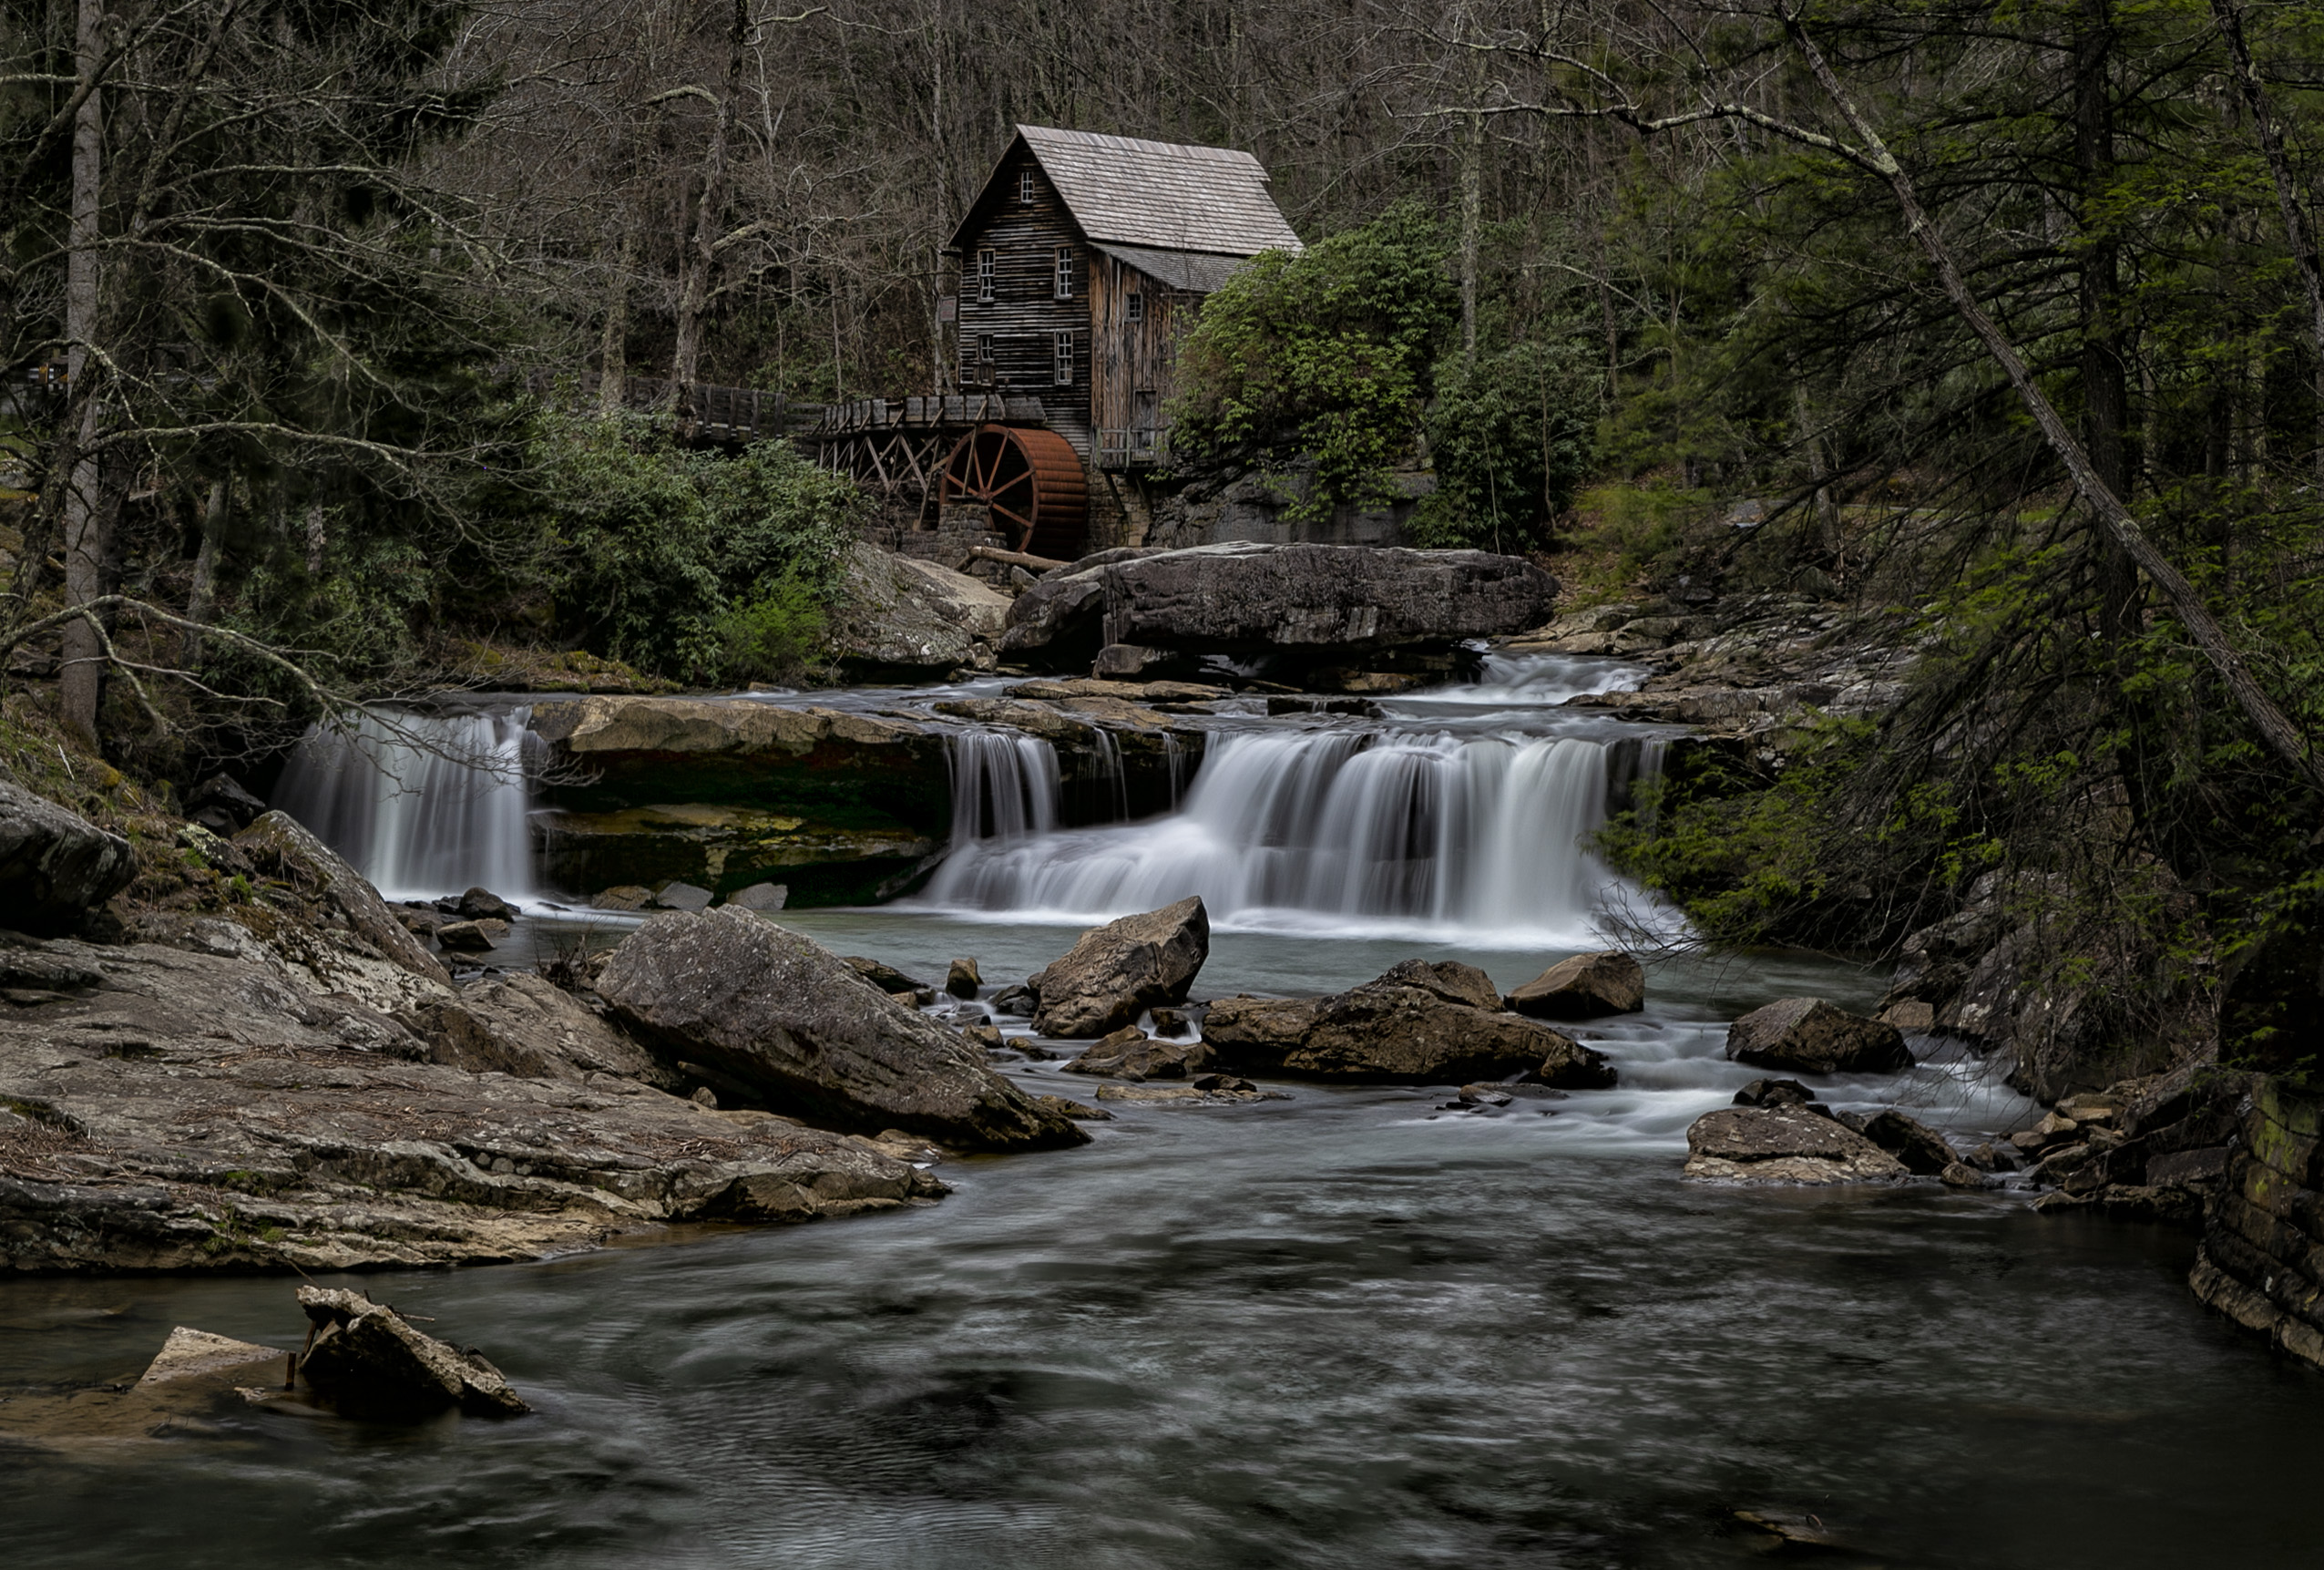 West Virginia_Babcock_Grist Mill_HDR3